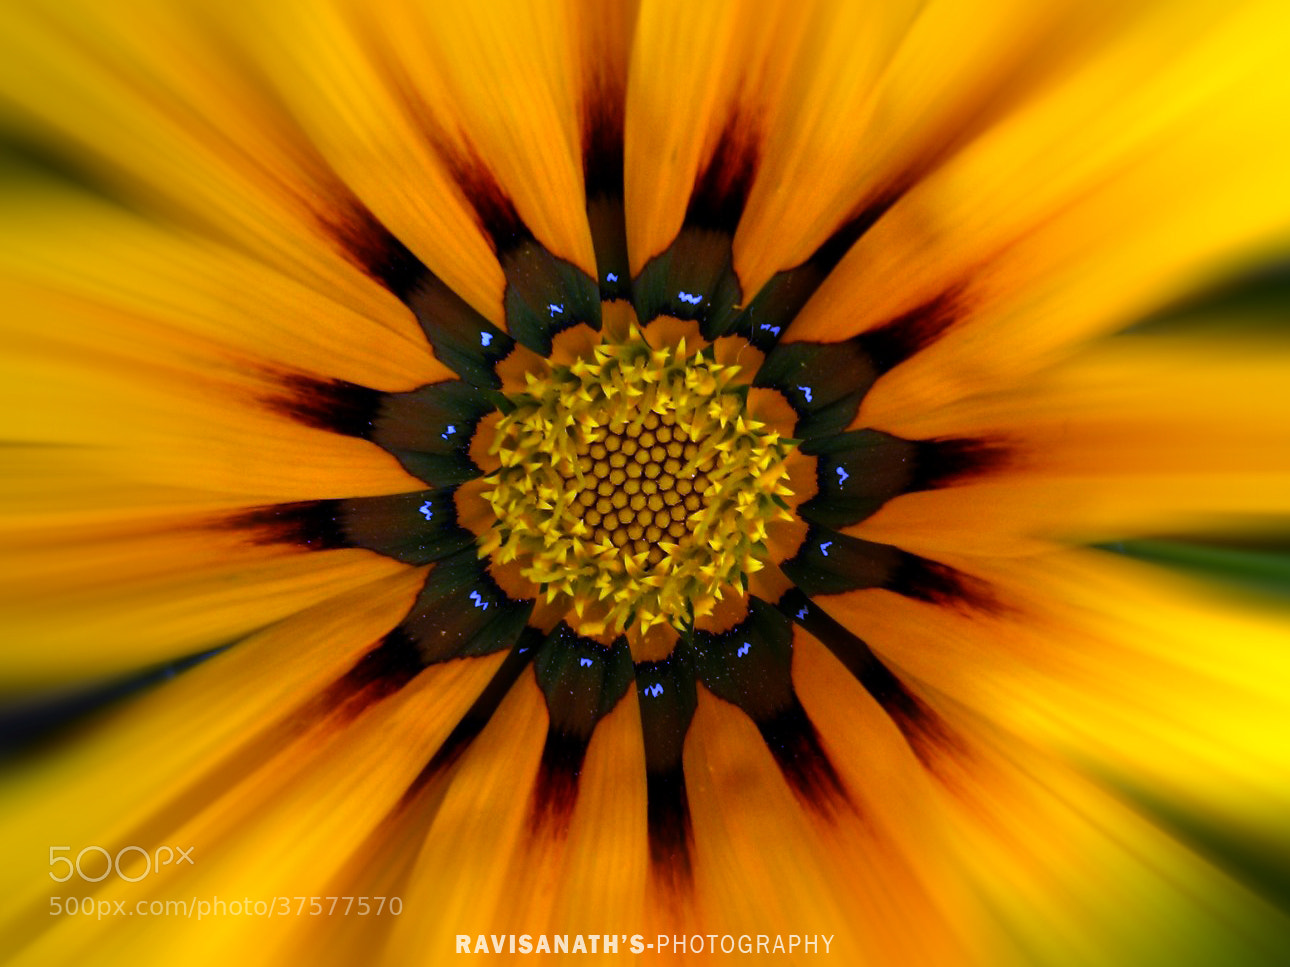 Photograph sunFLOWer>F:)ce by Ravisanath  on 500px